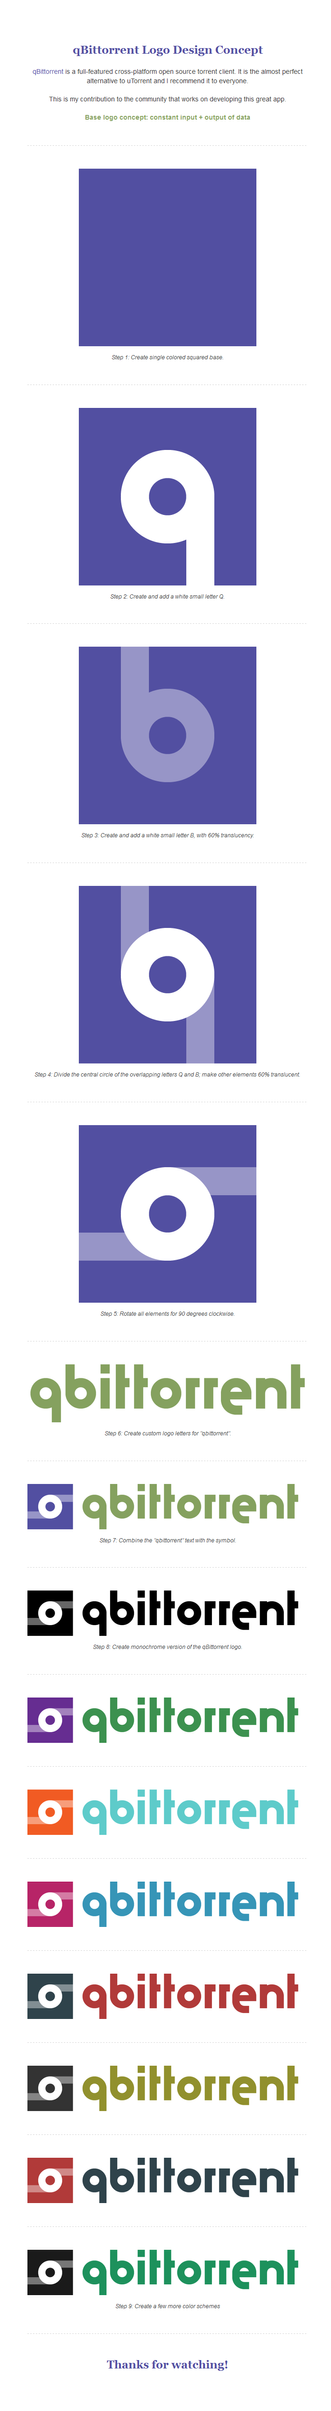 qBittorrent Logo Design Concept by monsteer